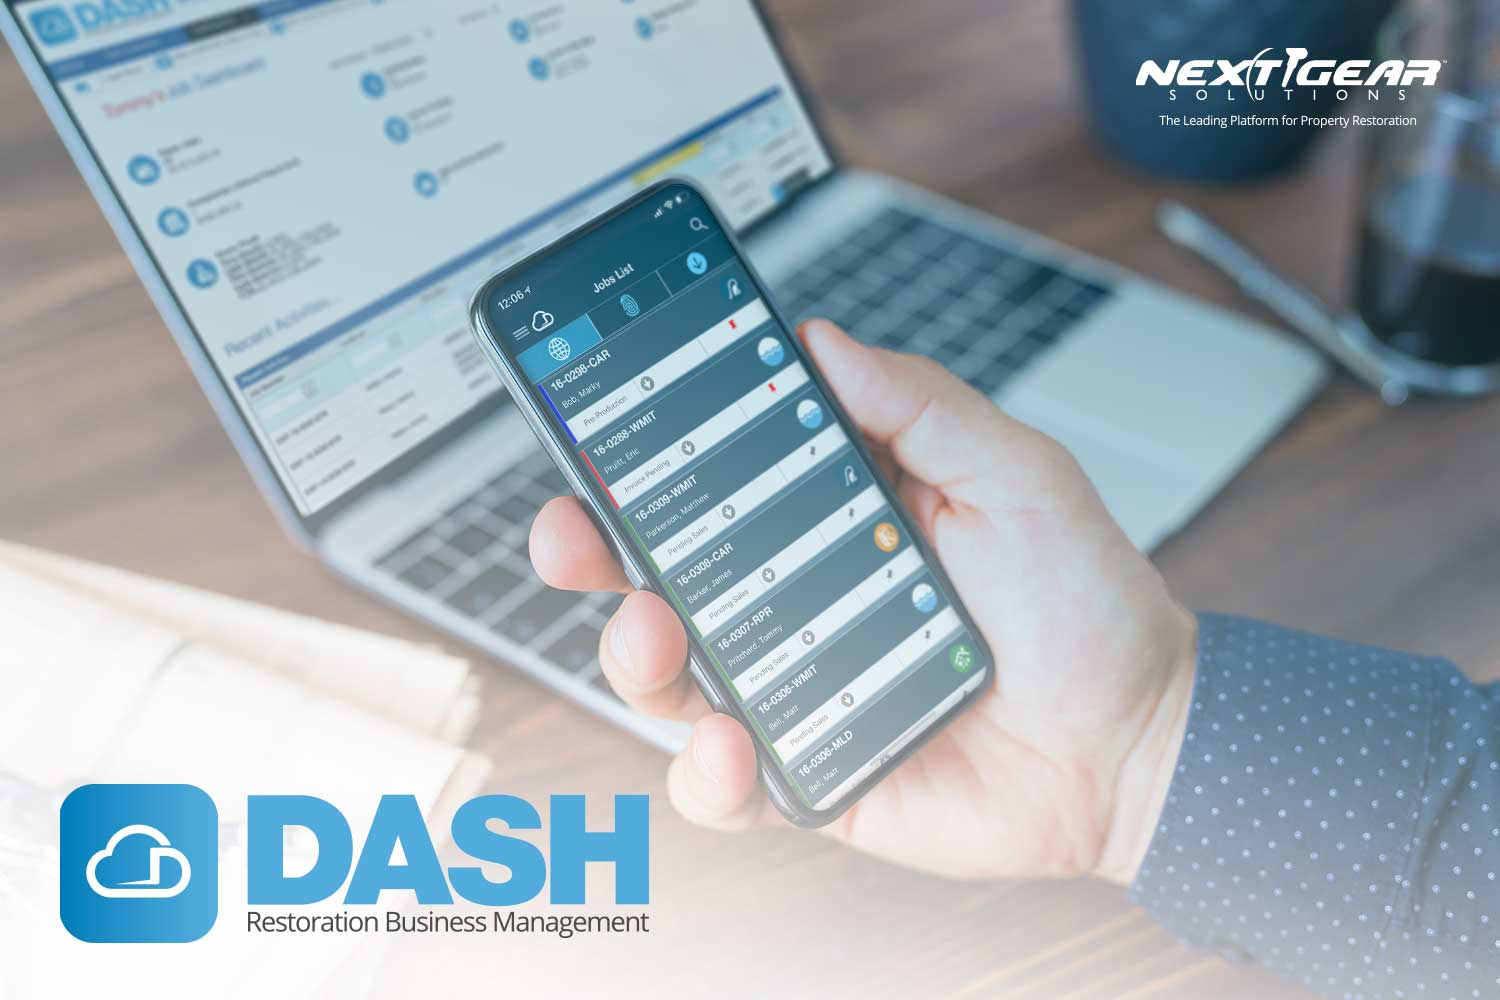 Intuitive Interface of DASH Restoration Job Management Software